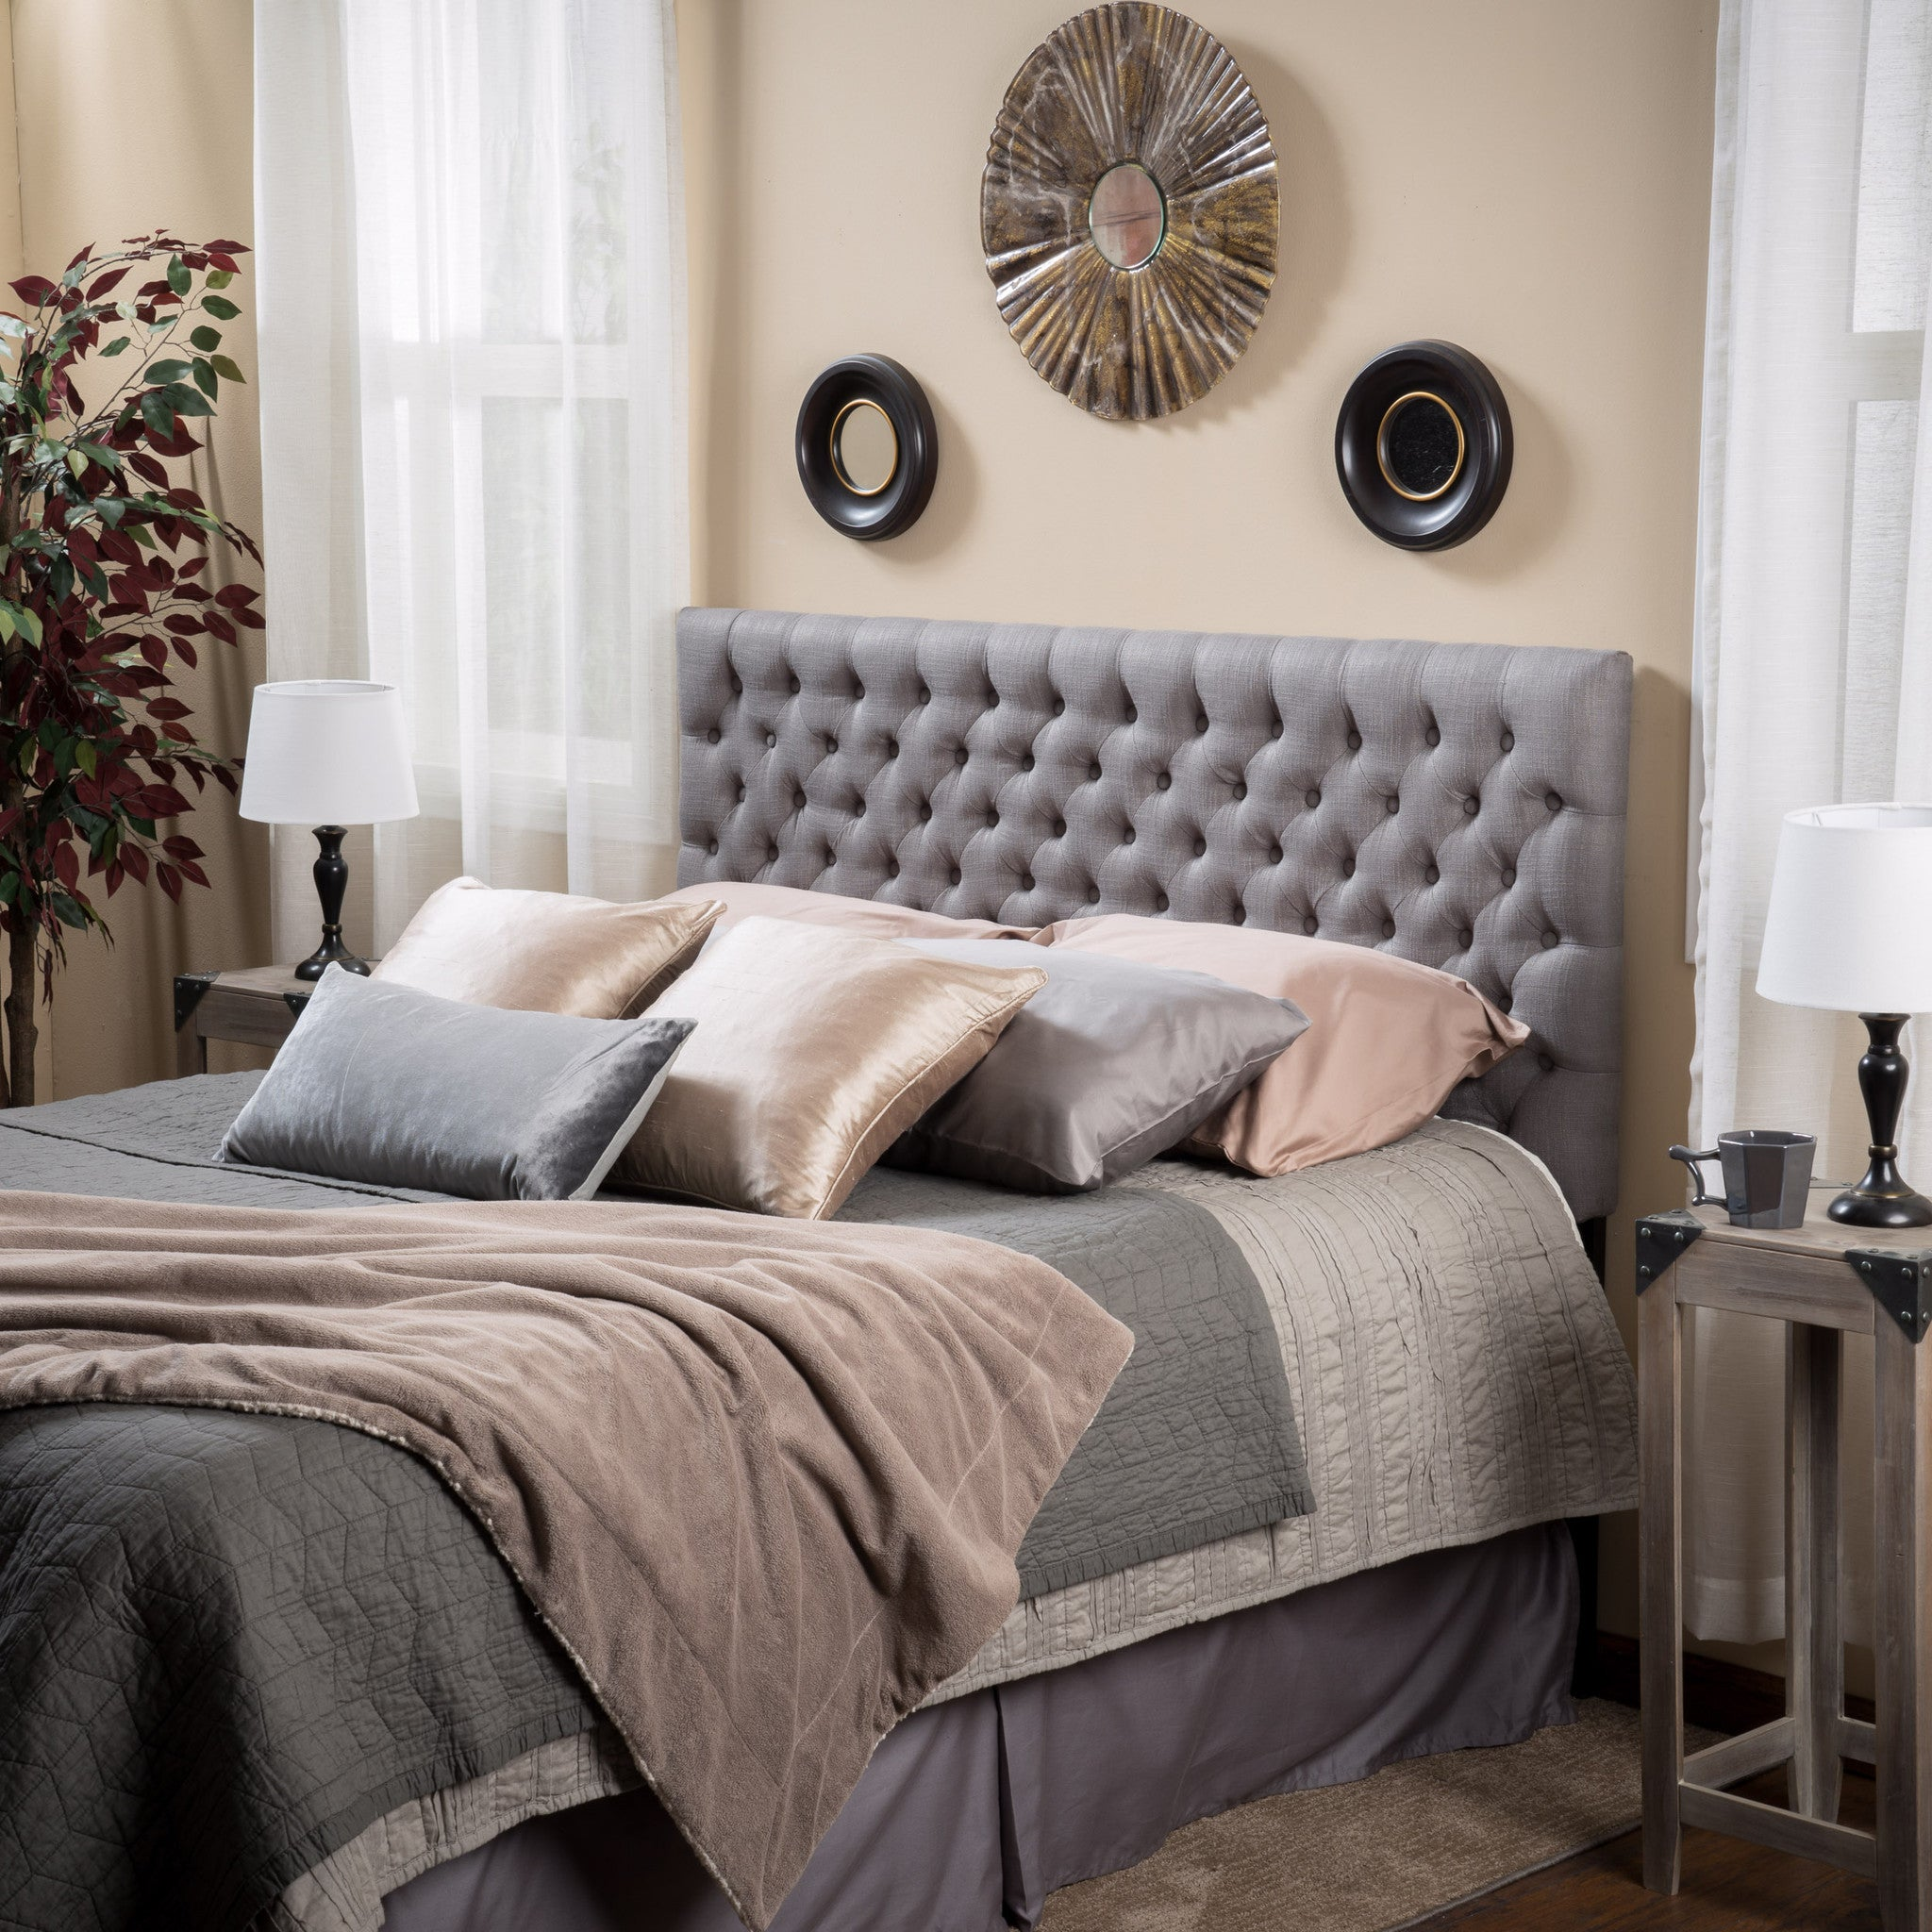 table top sets white shade dark comforter polyester brown panel bed frame covered headboard side twin bedroom glass gray distressed grey furniture lamp